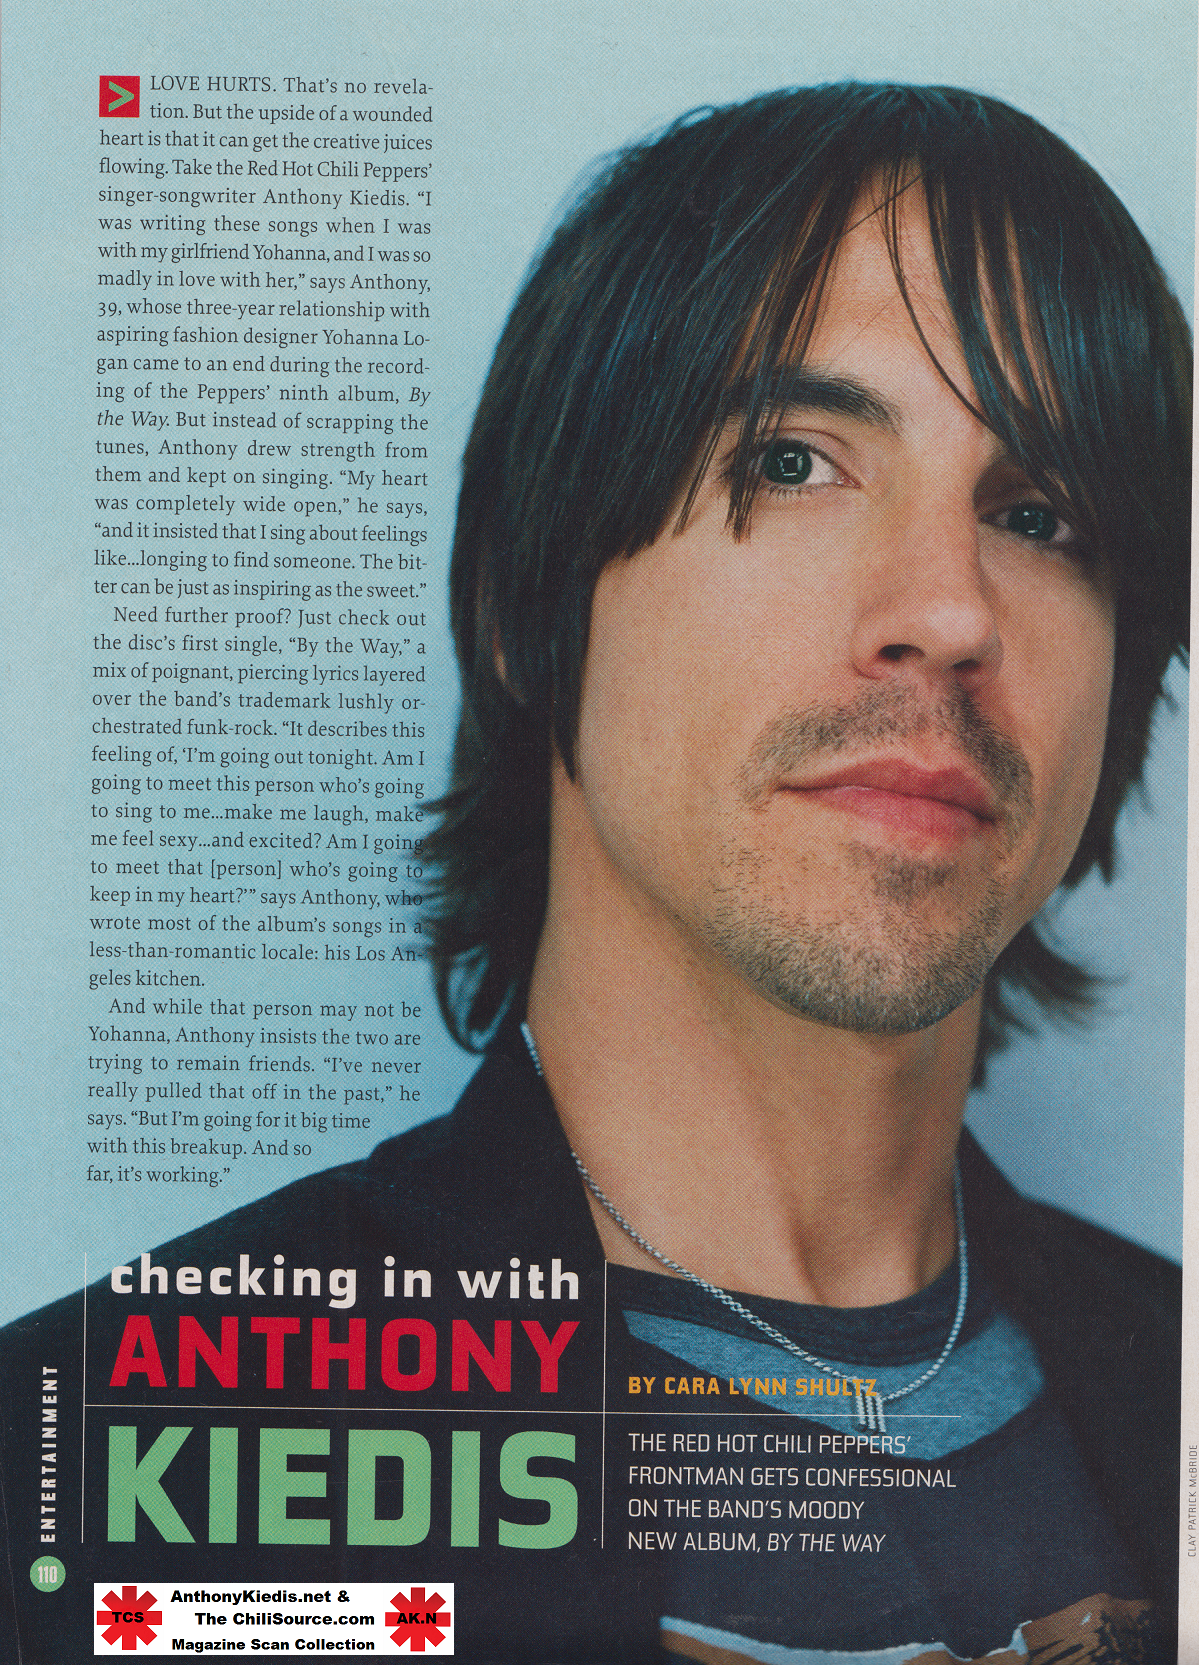 anthony kiedis essay Anthony kiedis and the red hot chili peppers the energetic singer of the alternative rock group, the red hot chili peppers, anthony kiedis was born on nov 1, 1962, in grand rapids, michigan kiedis' godfather was sonny bono, of sonny & cher fame.